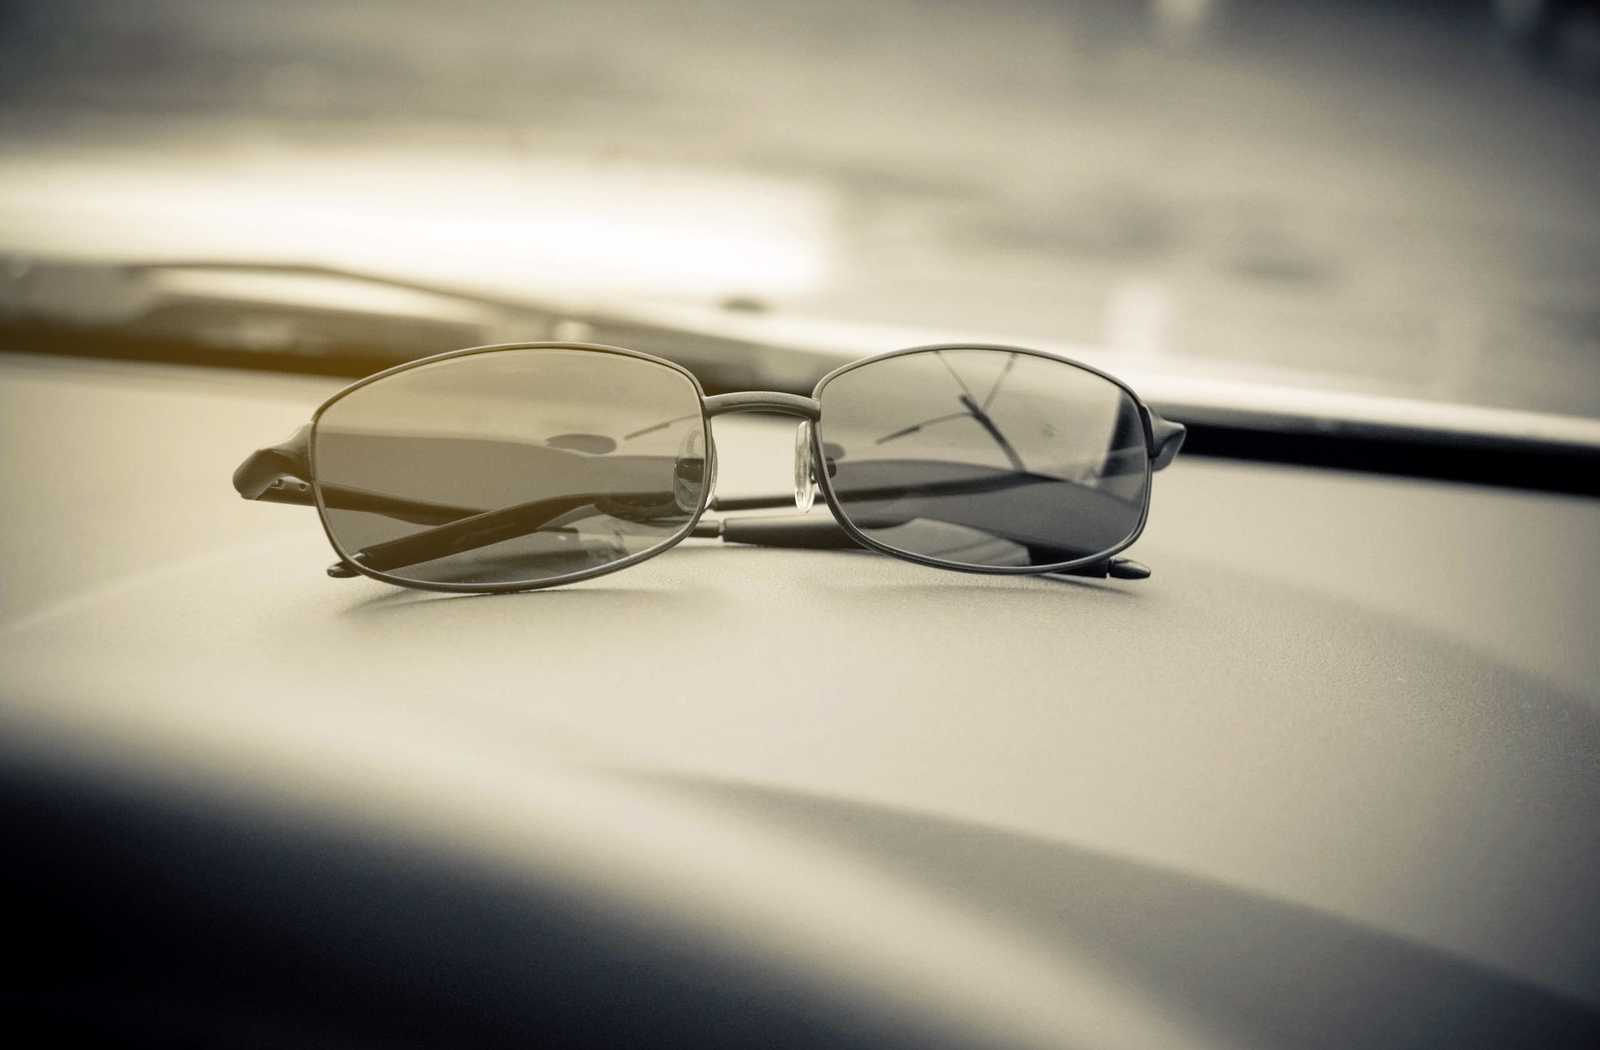 black and white shades quality sunglasses folded and resting on a car dashboard.